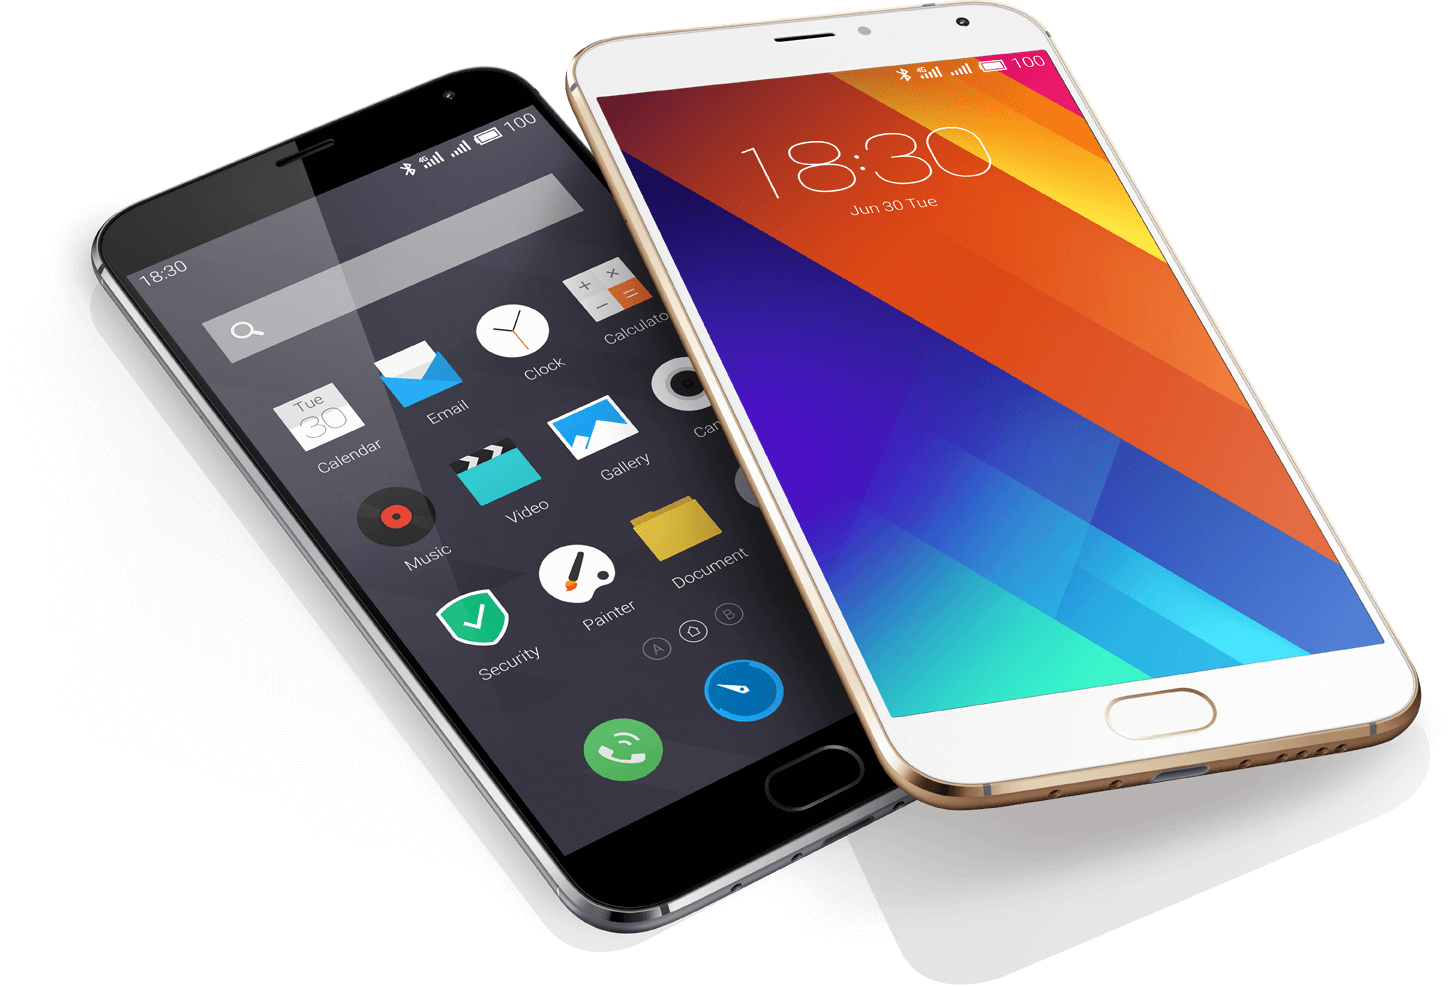 Download and Install Android Nougat 7.0 on Meizu Devices (Flyme OS 6)